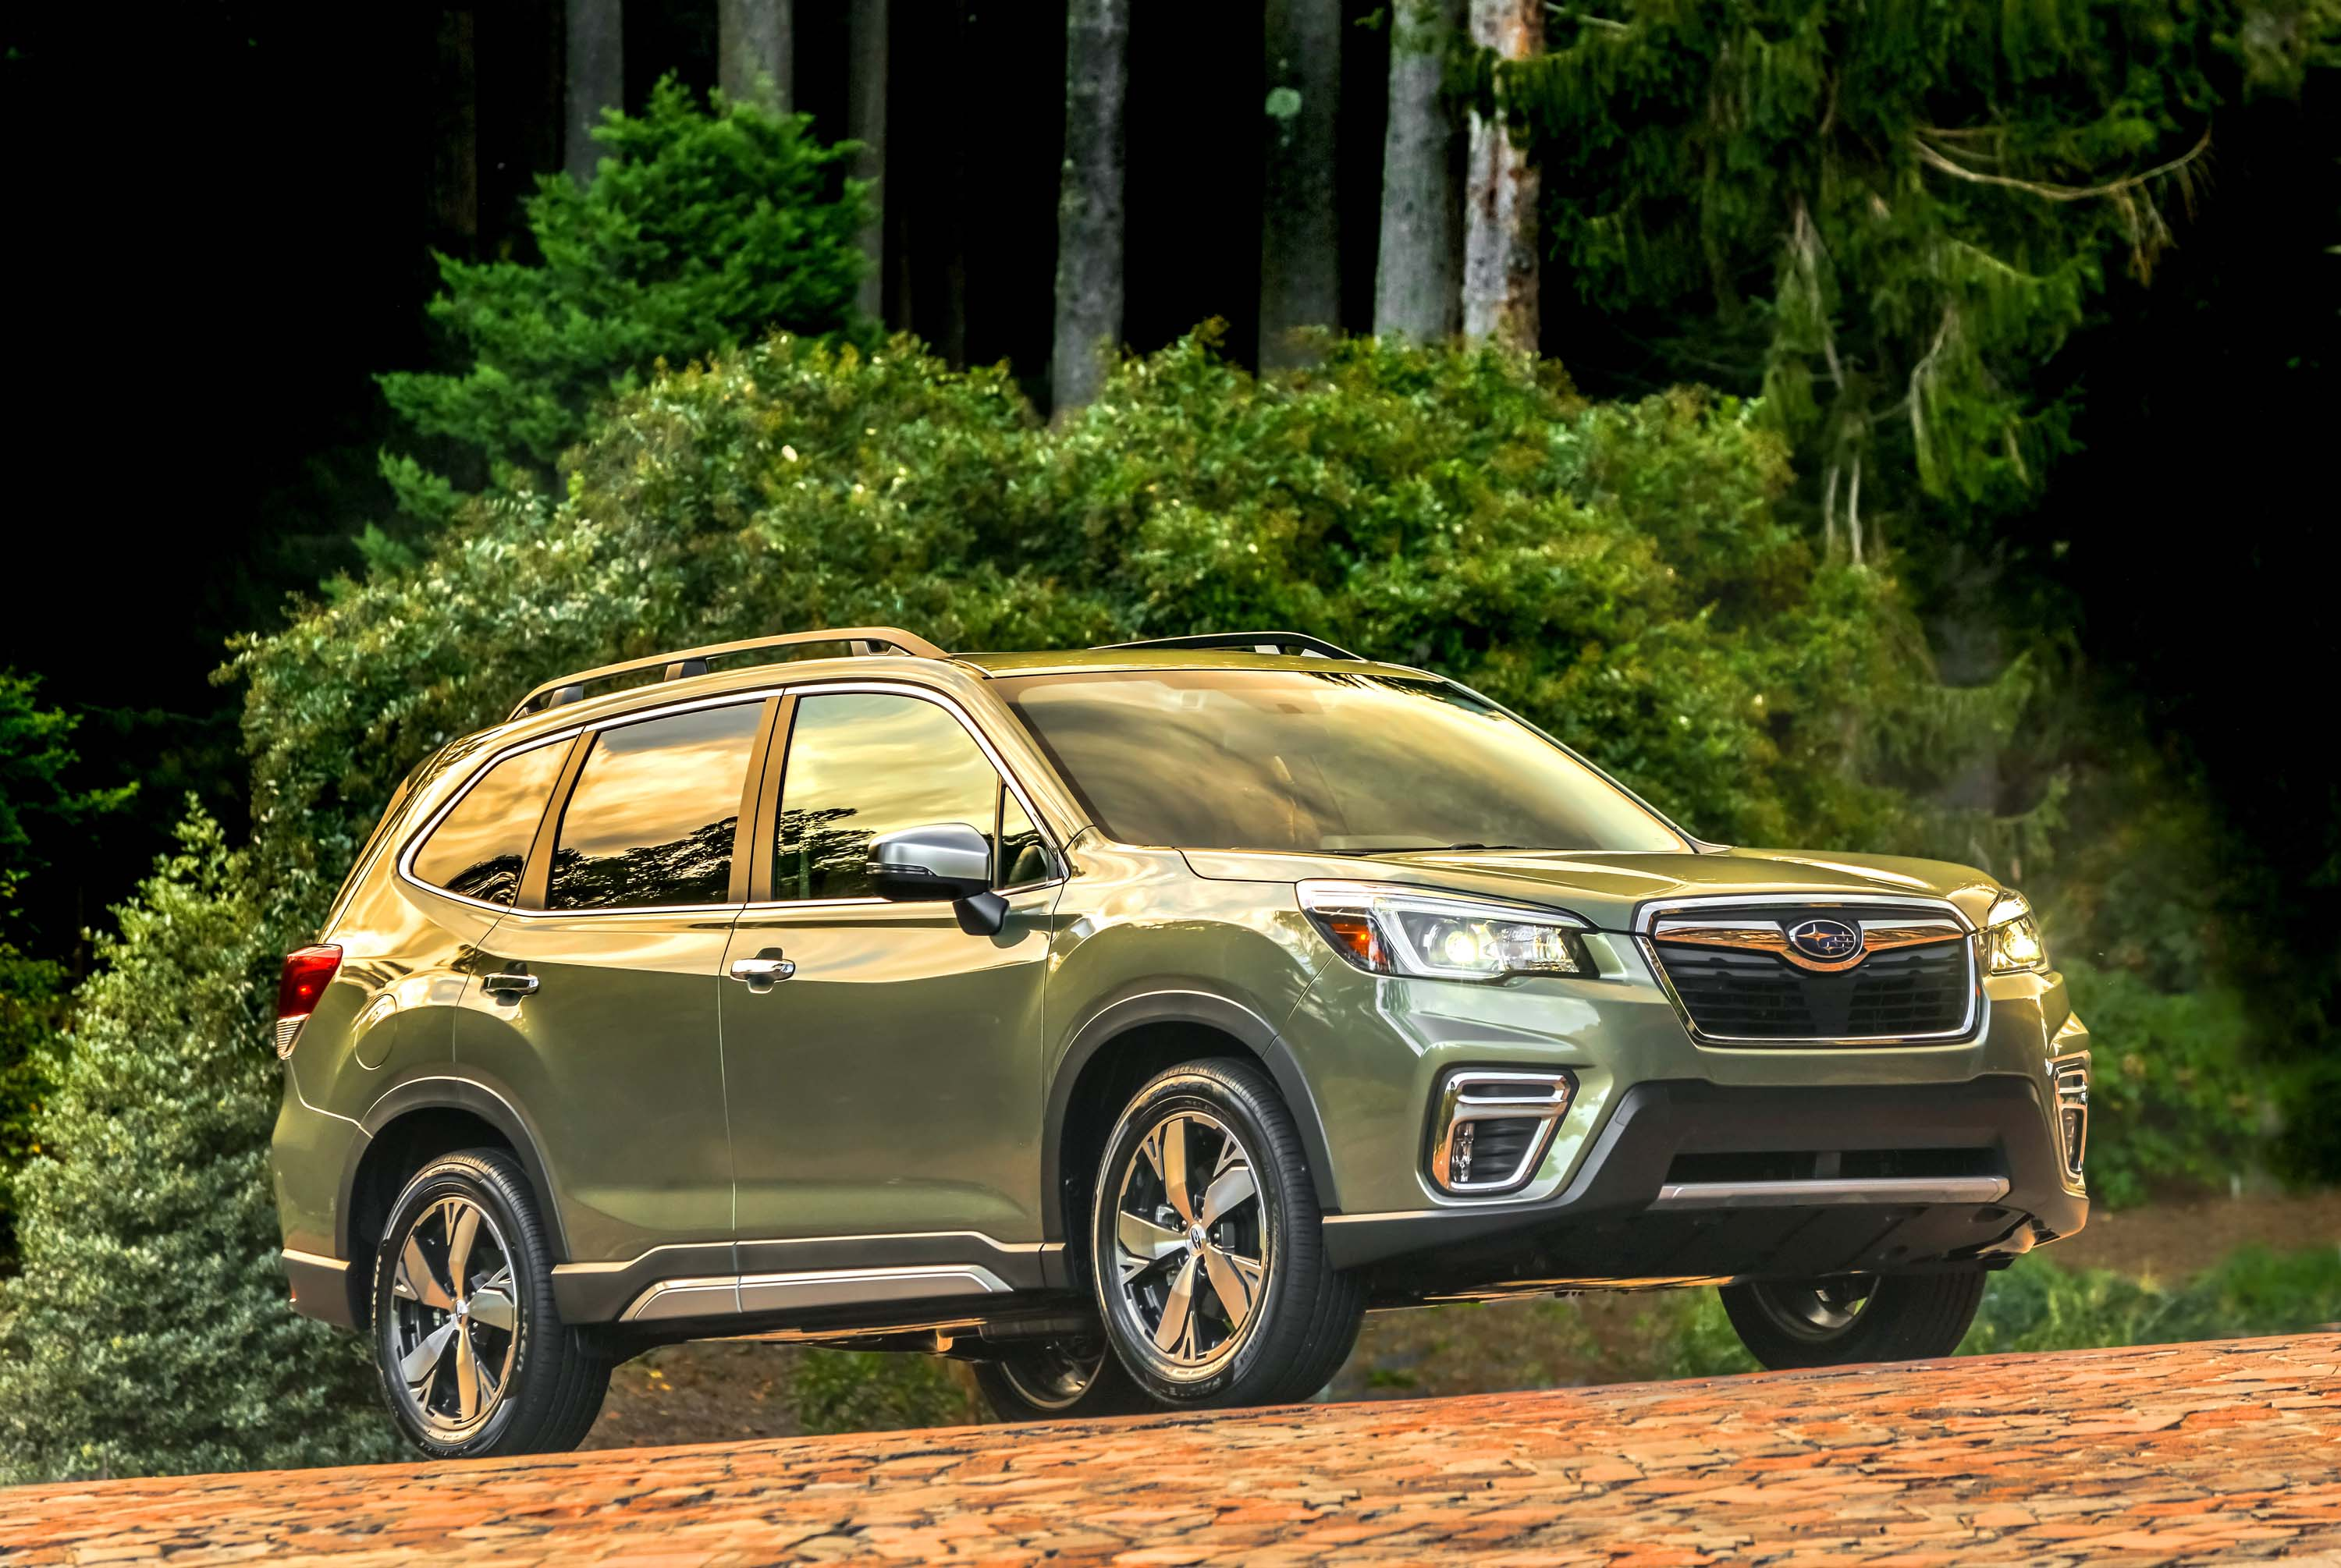 2019 Subaru Forester first drive review: Backwoods solitude